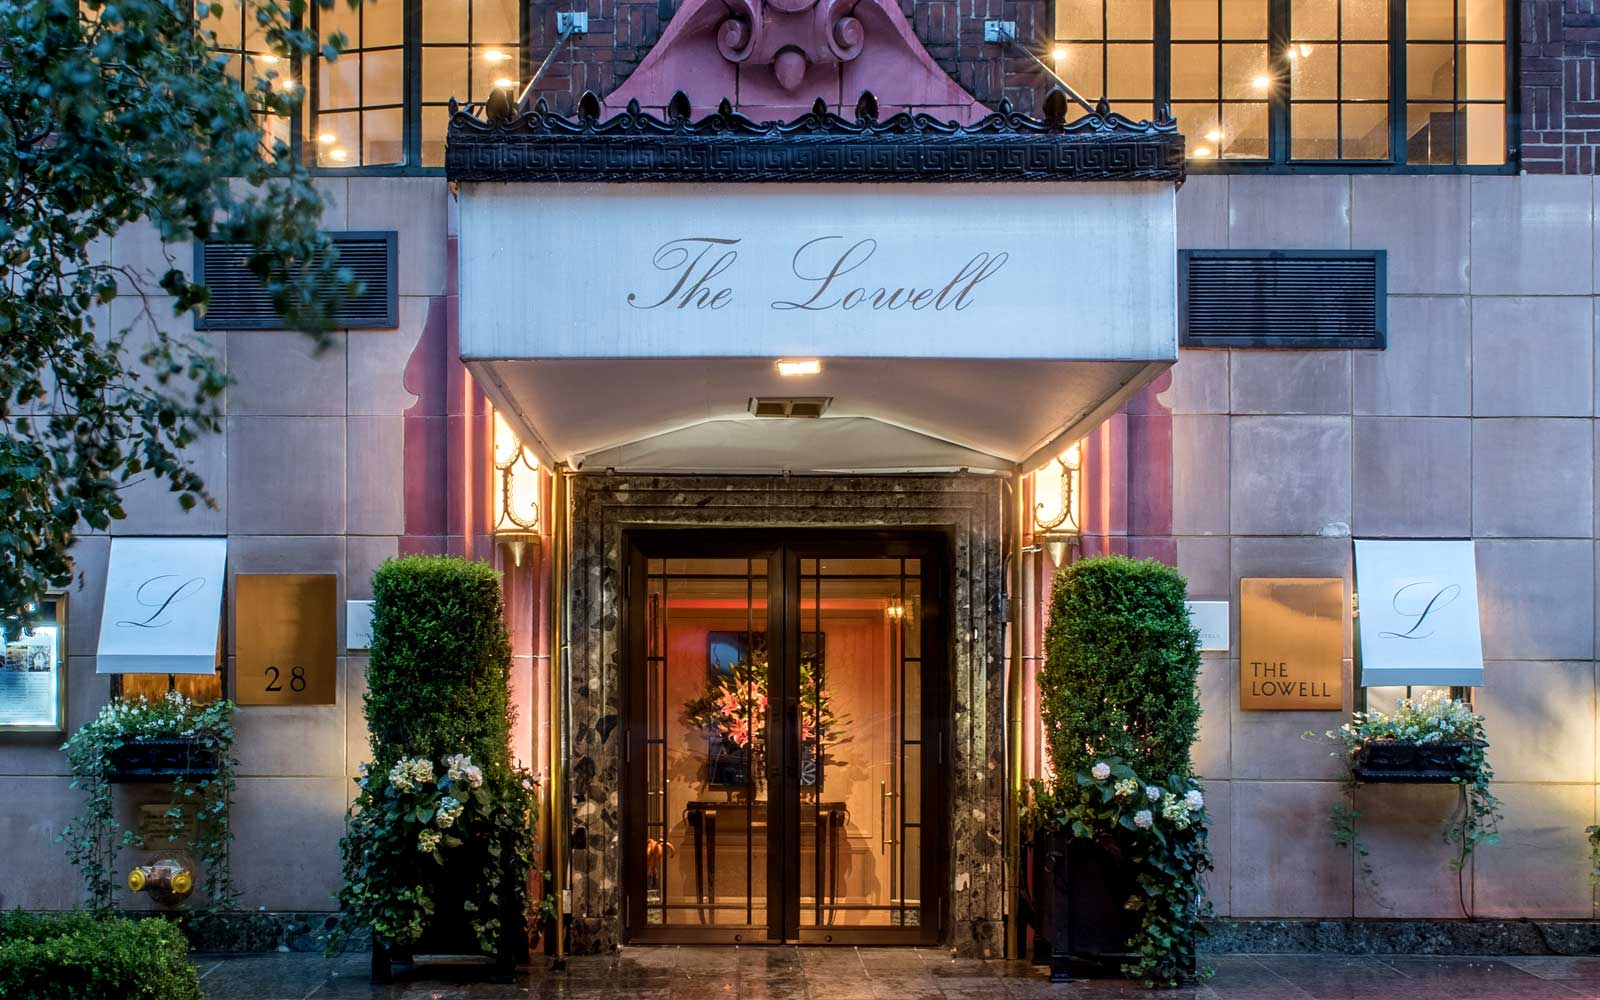 The Lowell Is the Best Hotel in New York City, According to Travel + Leisure Readers